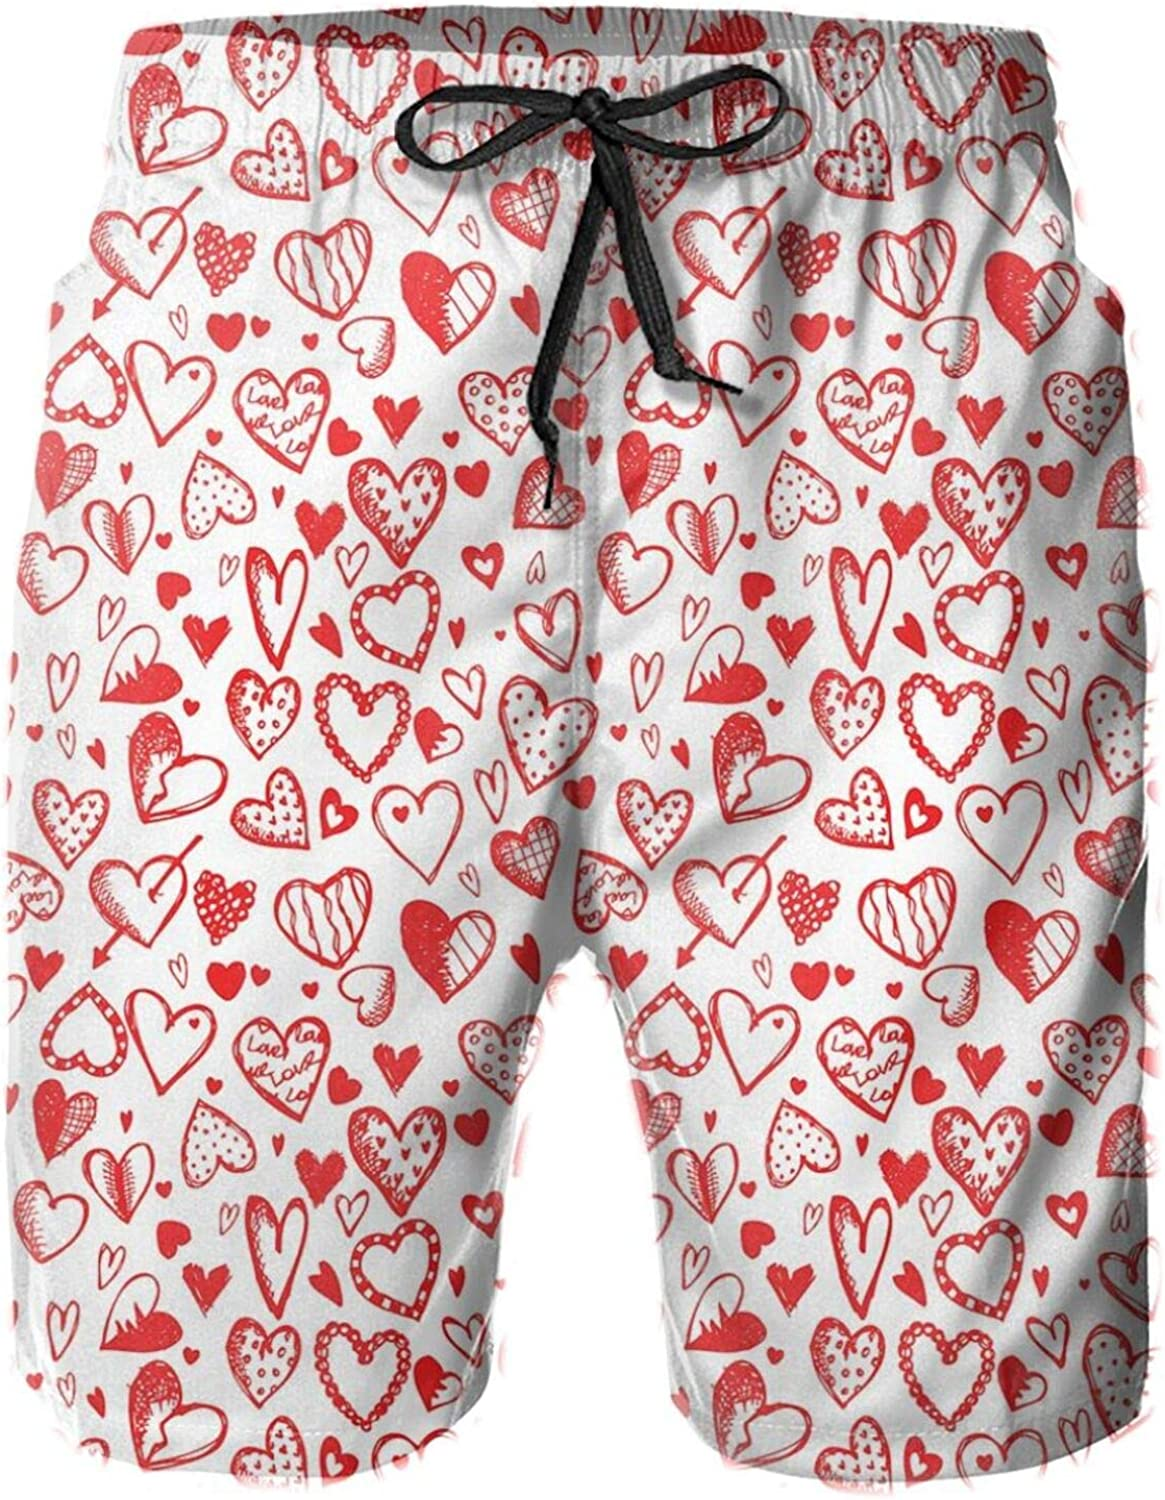 Red and White Pattern with Sketchy Hearts Dots Arrows Romance and Love Theme Printed Beach Shorts for Men Swim Trucks Mesh Lining,L